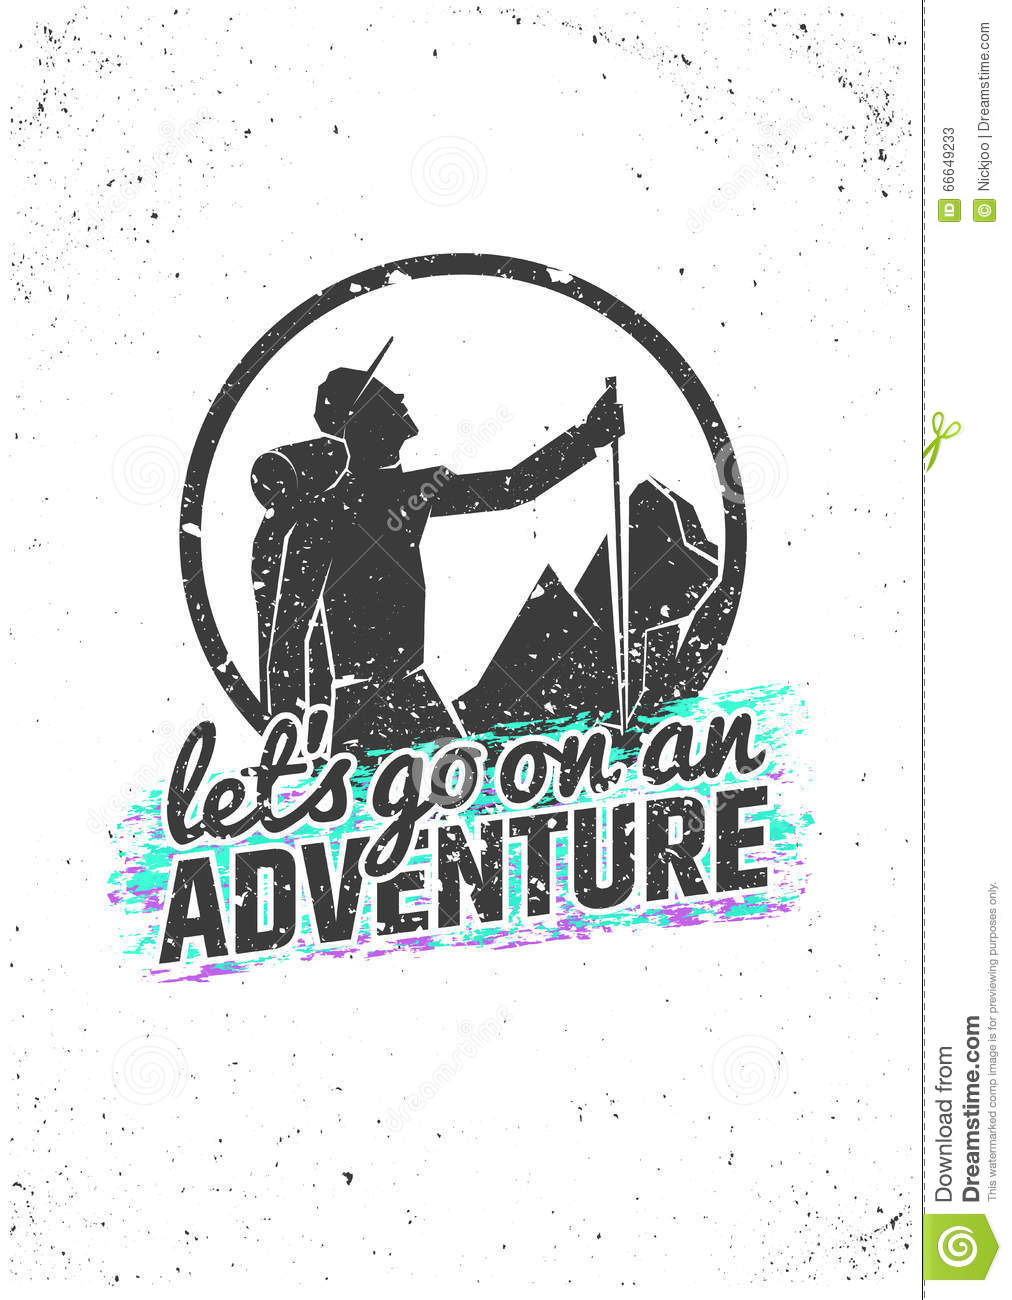 d7c062605021 Let's go on an adventure. Hiking inspirational poster on grunge background.  Vector typographic concept for t-shirt print, greeting and postal cards